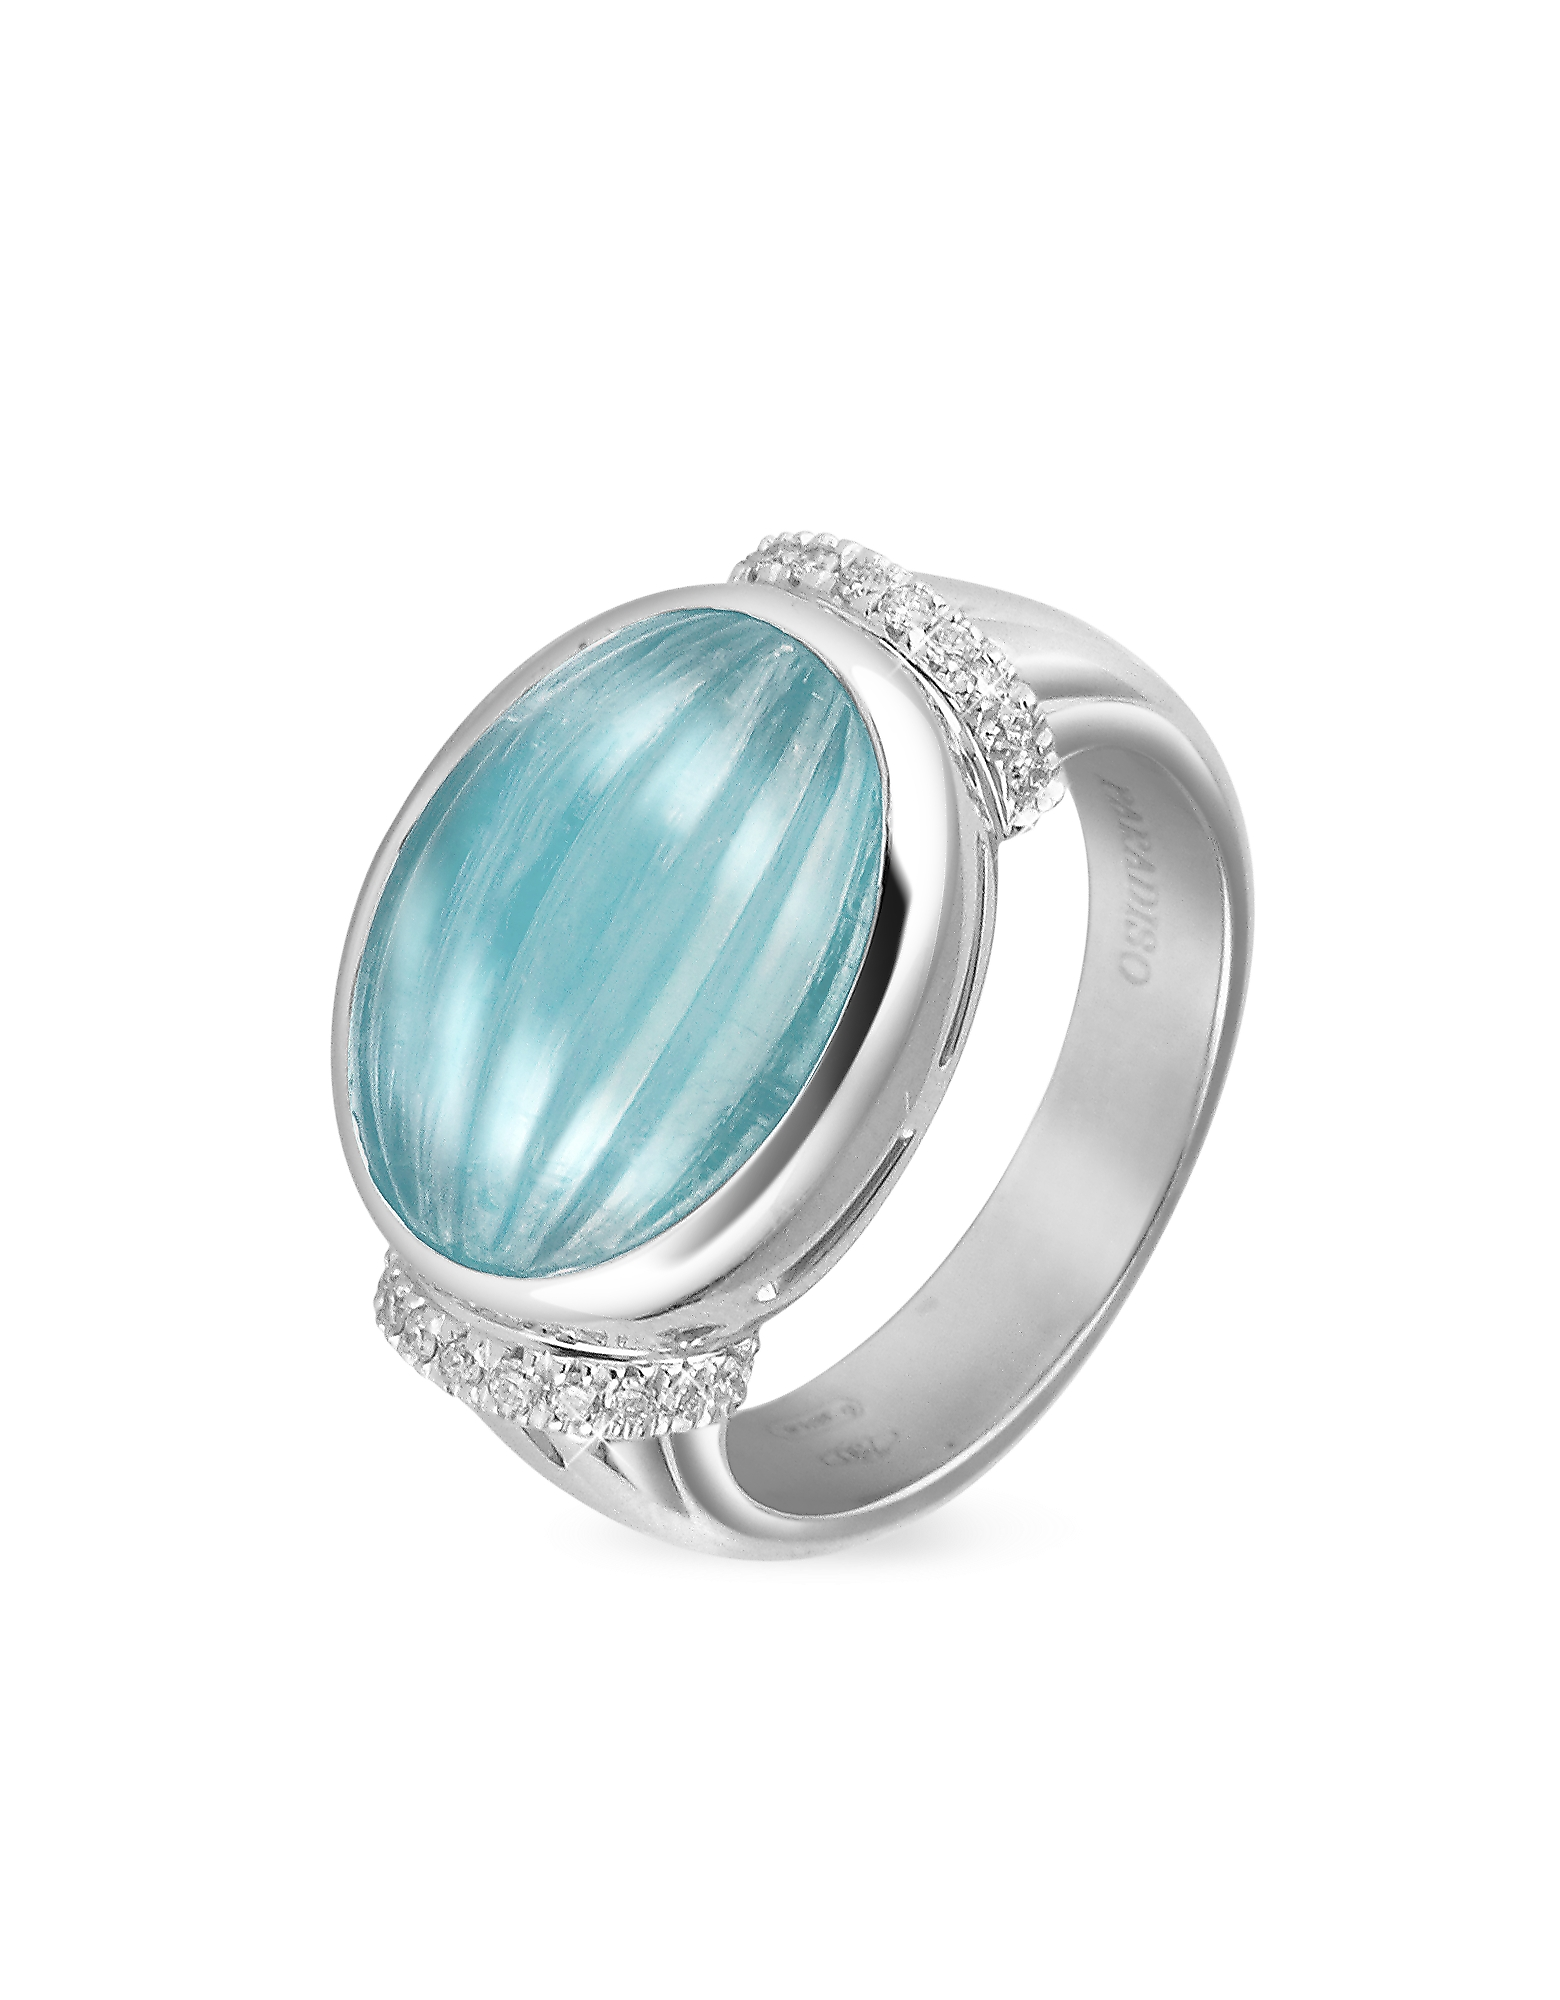 Roma Imperiale Rings, Carved Aquamarine and Diamond 18K Gold Ring